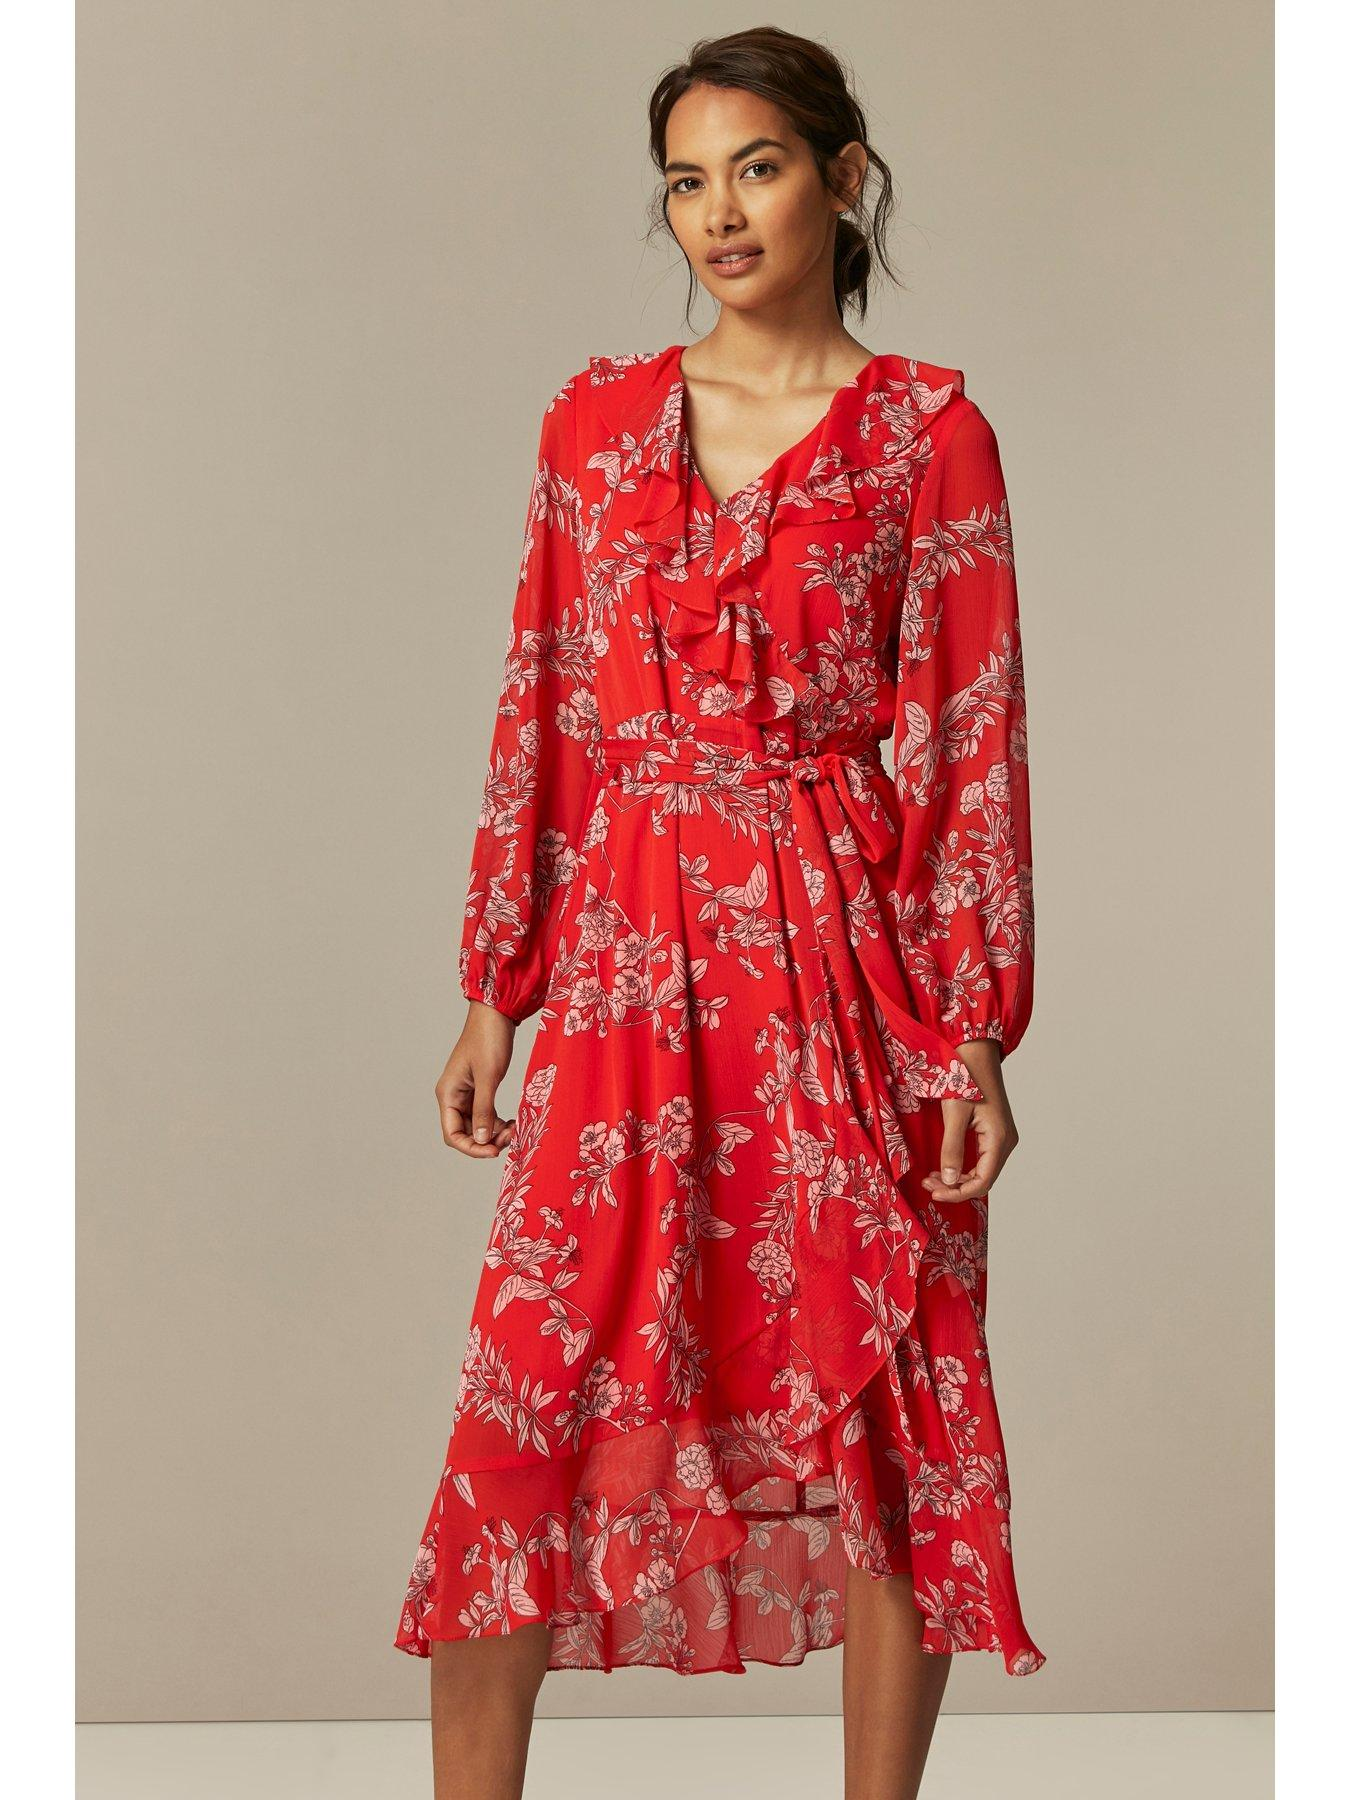 WALLIS Red Chiffon Layered Loose Fit Party Dress Was £39